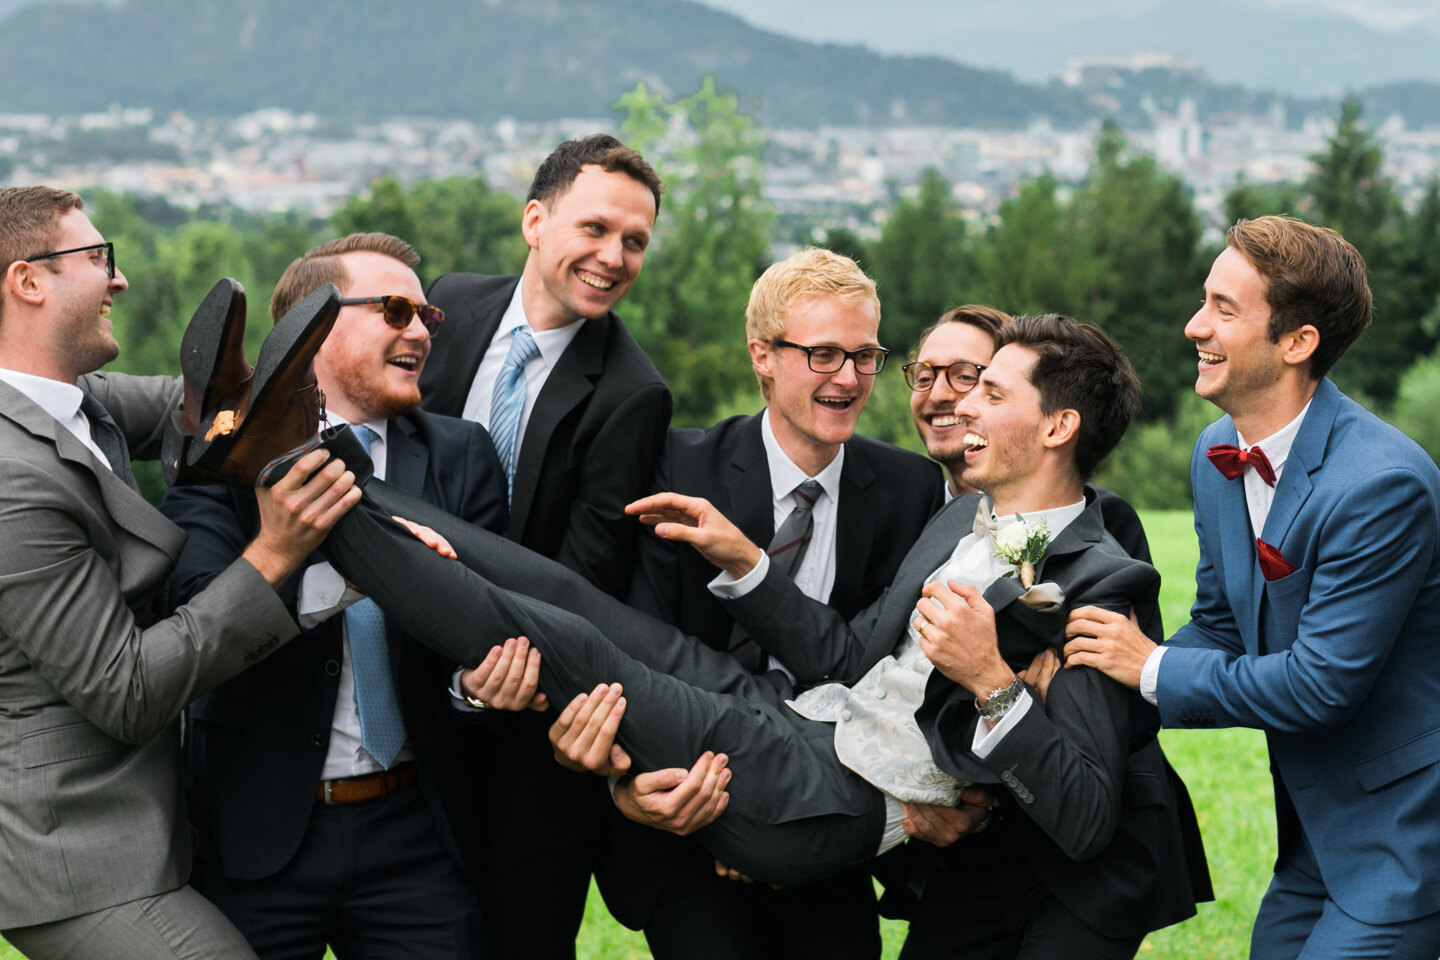 Wedding Photographer in Rome: Friends of the groom cheerfully throw him up and then catch him